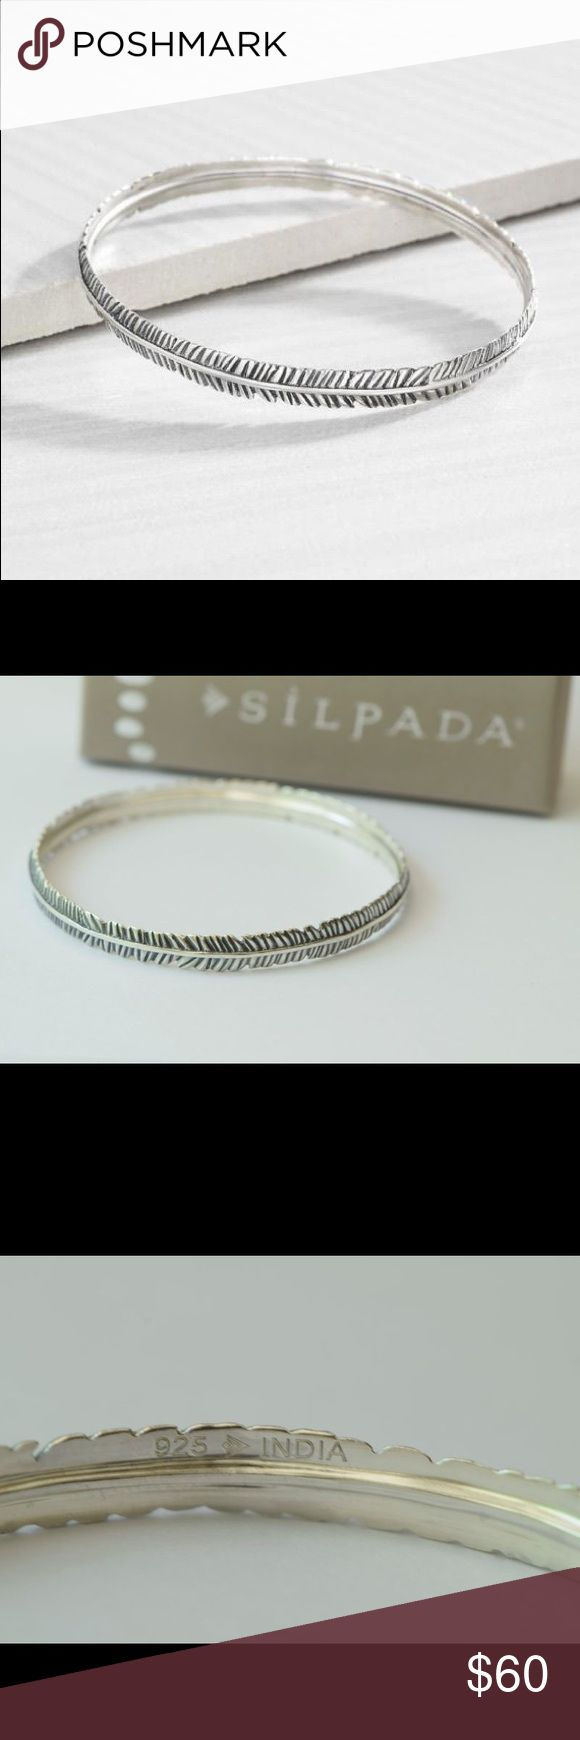 Silpada Designs.925 Sterling Silver feather bangle .925 Sterling silver bangle Silpada Jewelry Bracelets